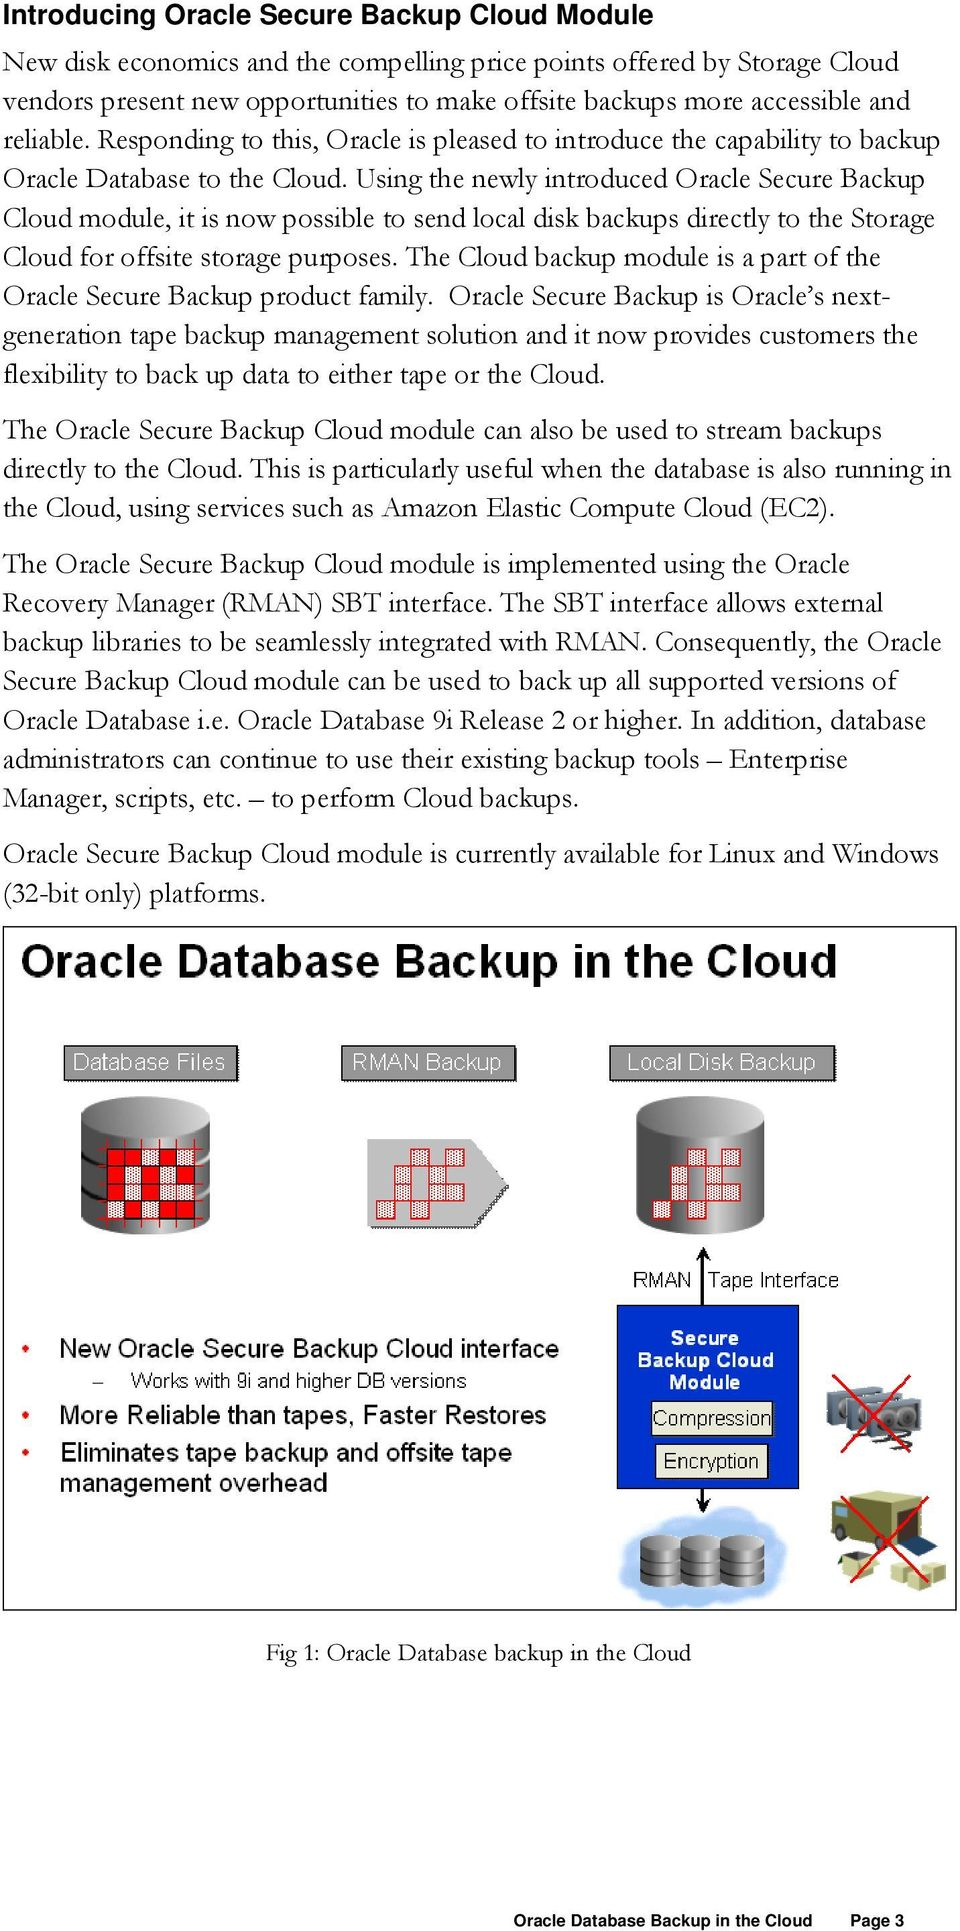 Using the newly introduced Oracle Secure Backup Cloud module, it is now possible to send local disk backups directly to the Storage Cloud for offsite storage purposes.